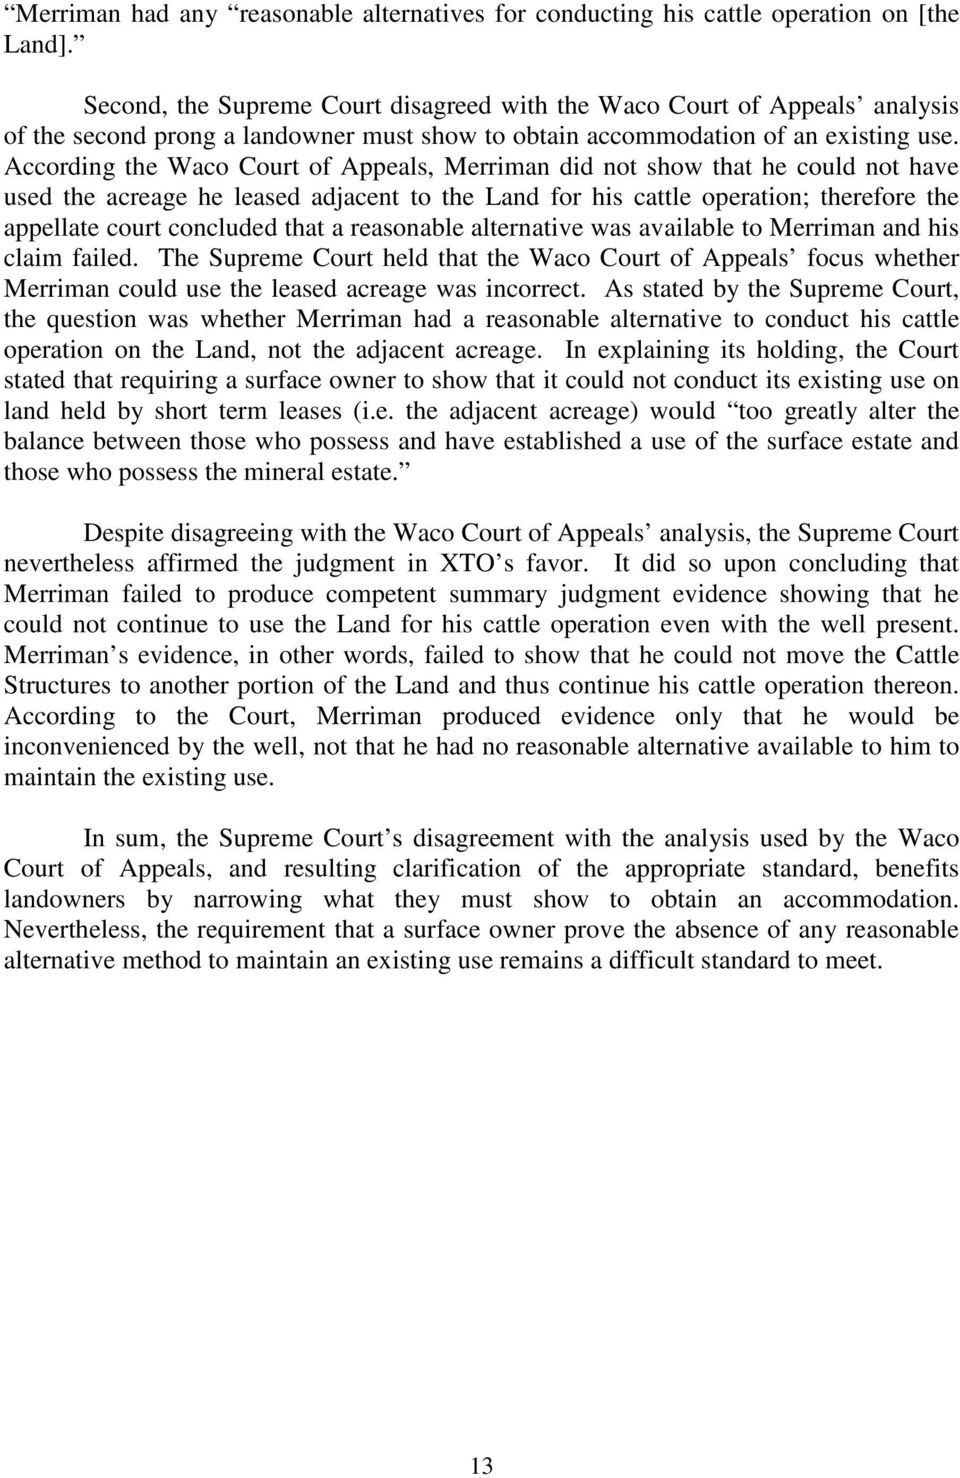 According the Waco Court of Appeals, Merriman did not show that he could not have used the acreage he leased adjacent to the Land for his cattle operation; therefore the appellate court concluded